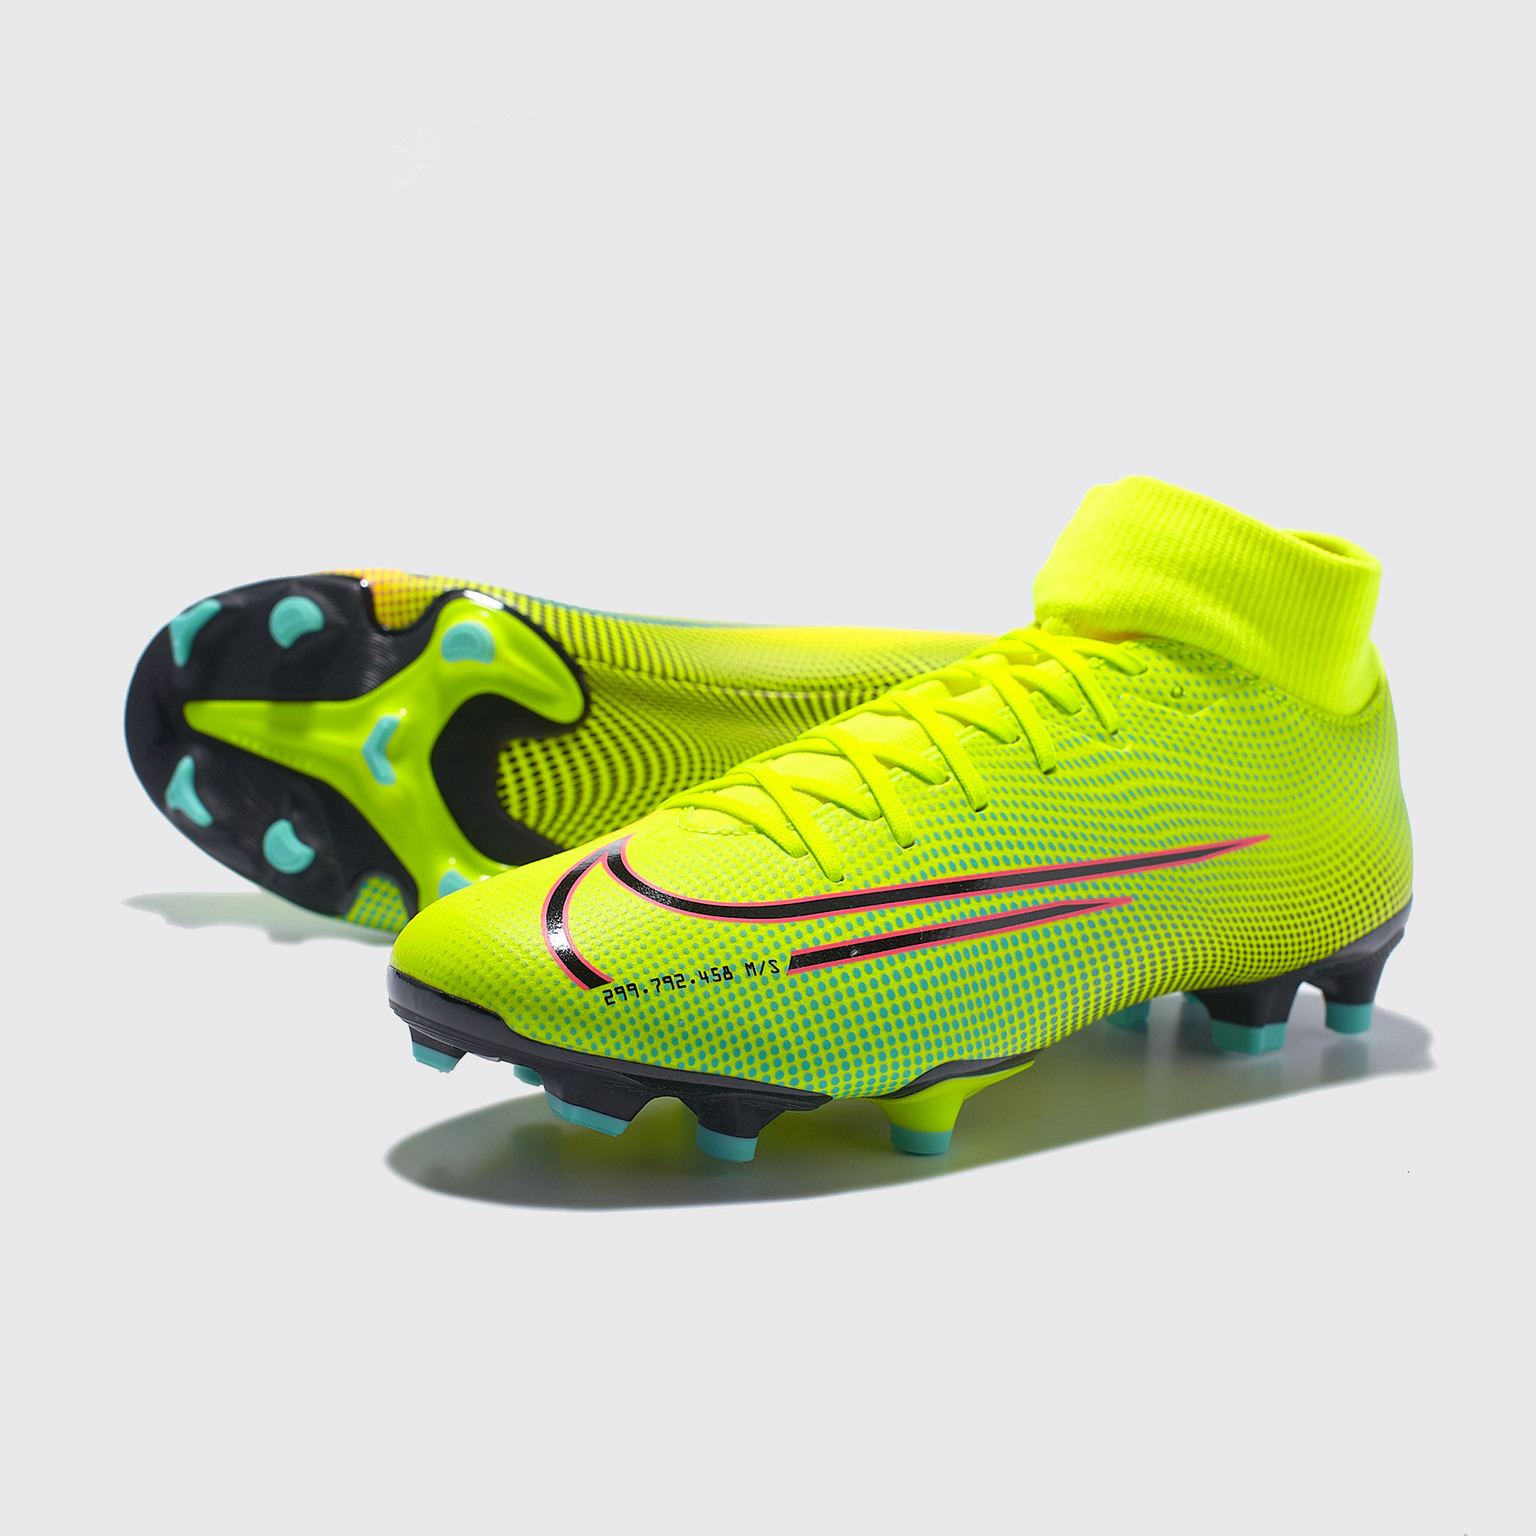 Бутсы Nike Superfly 7 Academy MDS FG/MG BQ5427-703 бутсы nike superfly 6 club fg mg ah7363 001